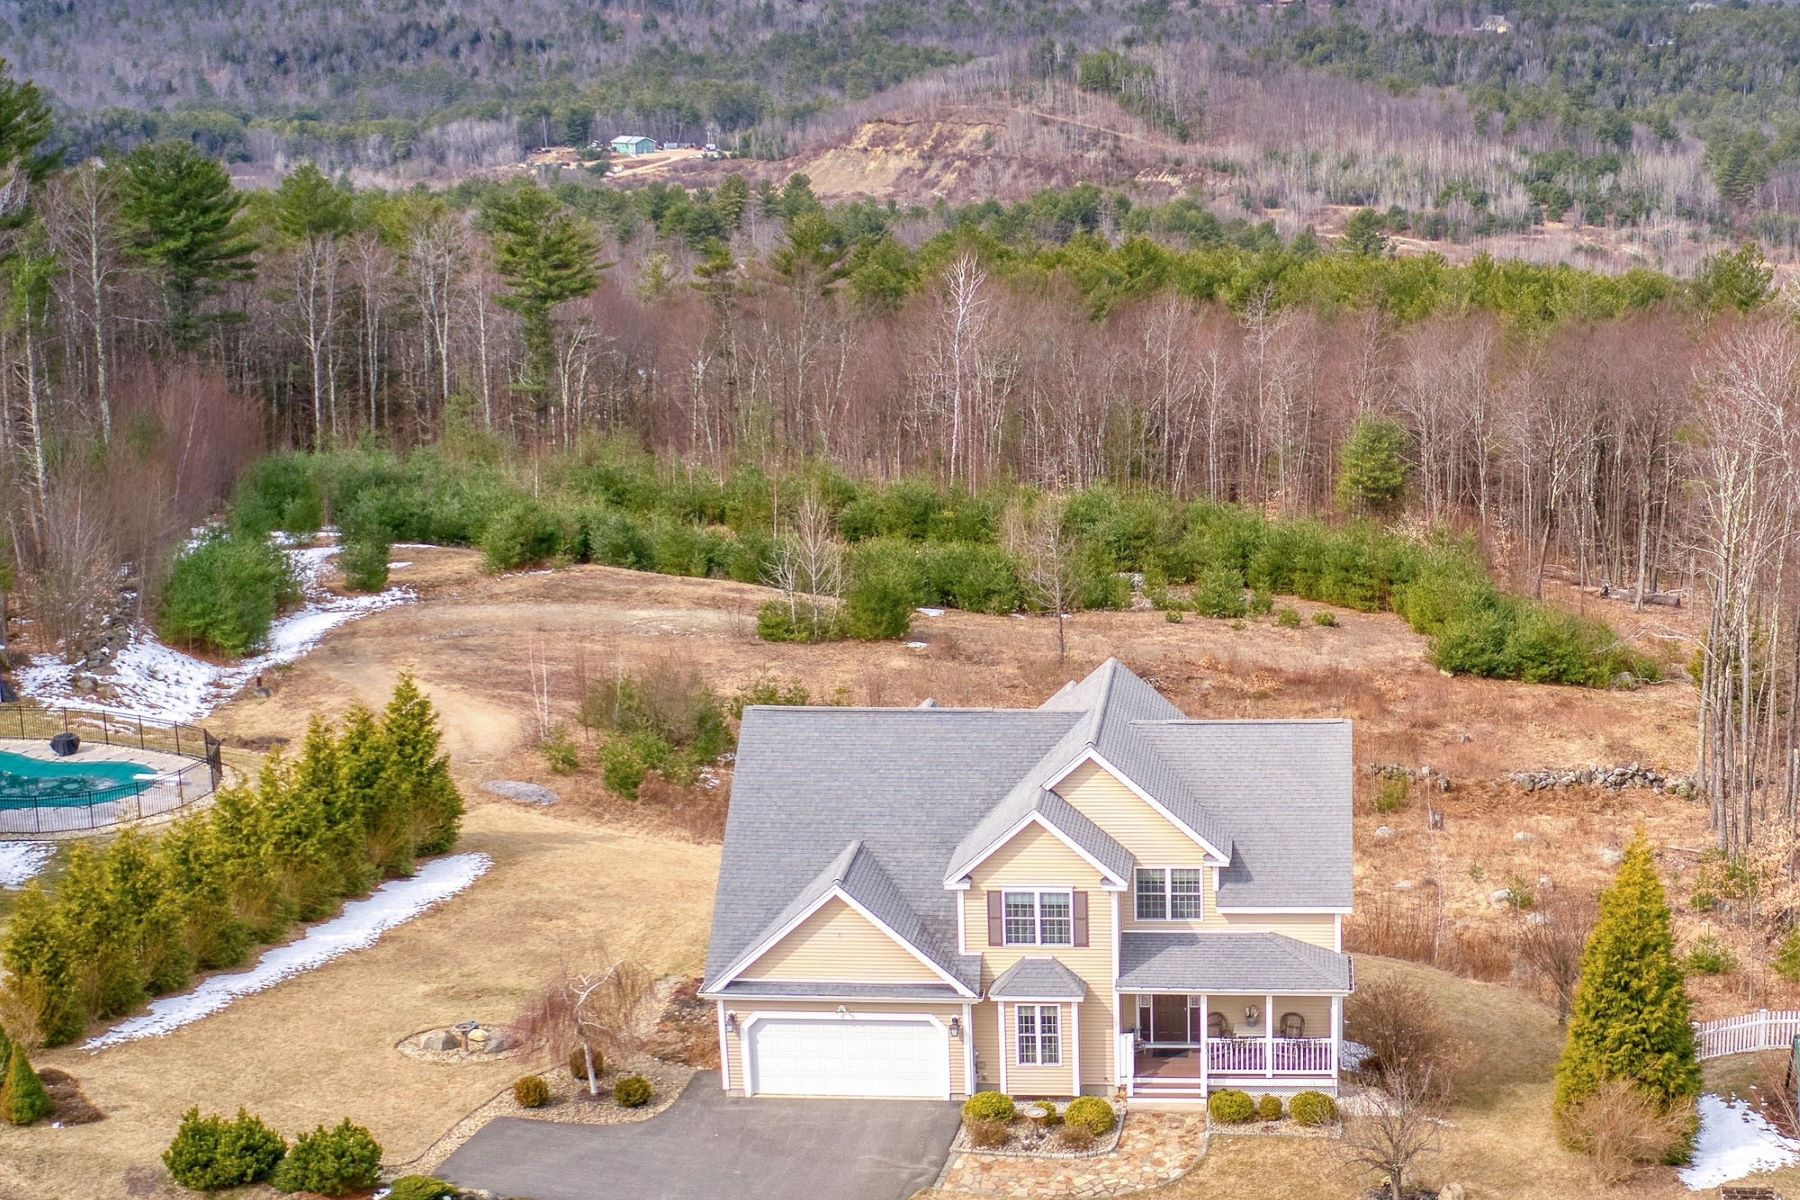 Single Family Homes for Sale at Major Long Range Views of Southern NH Mtns 32 Hutchinson Lane New Boston, New Hampshire 03070 United States